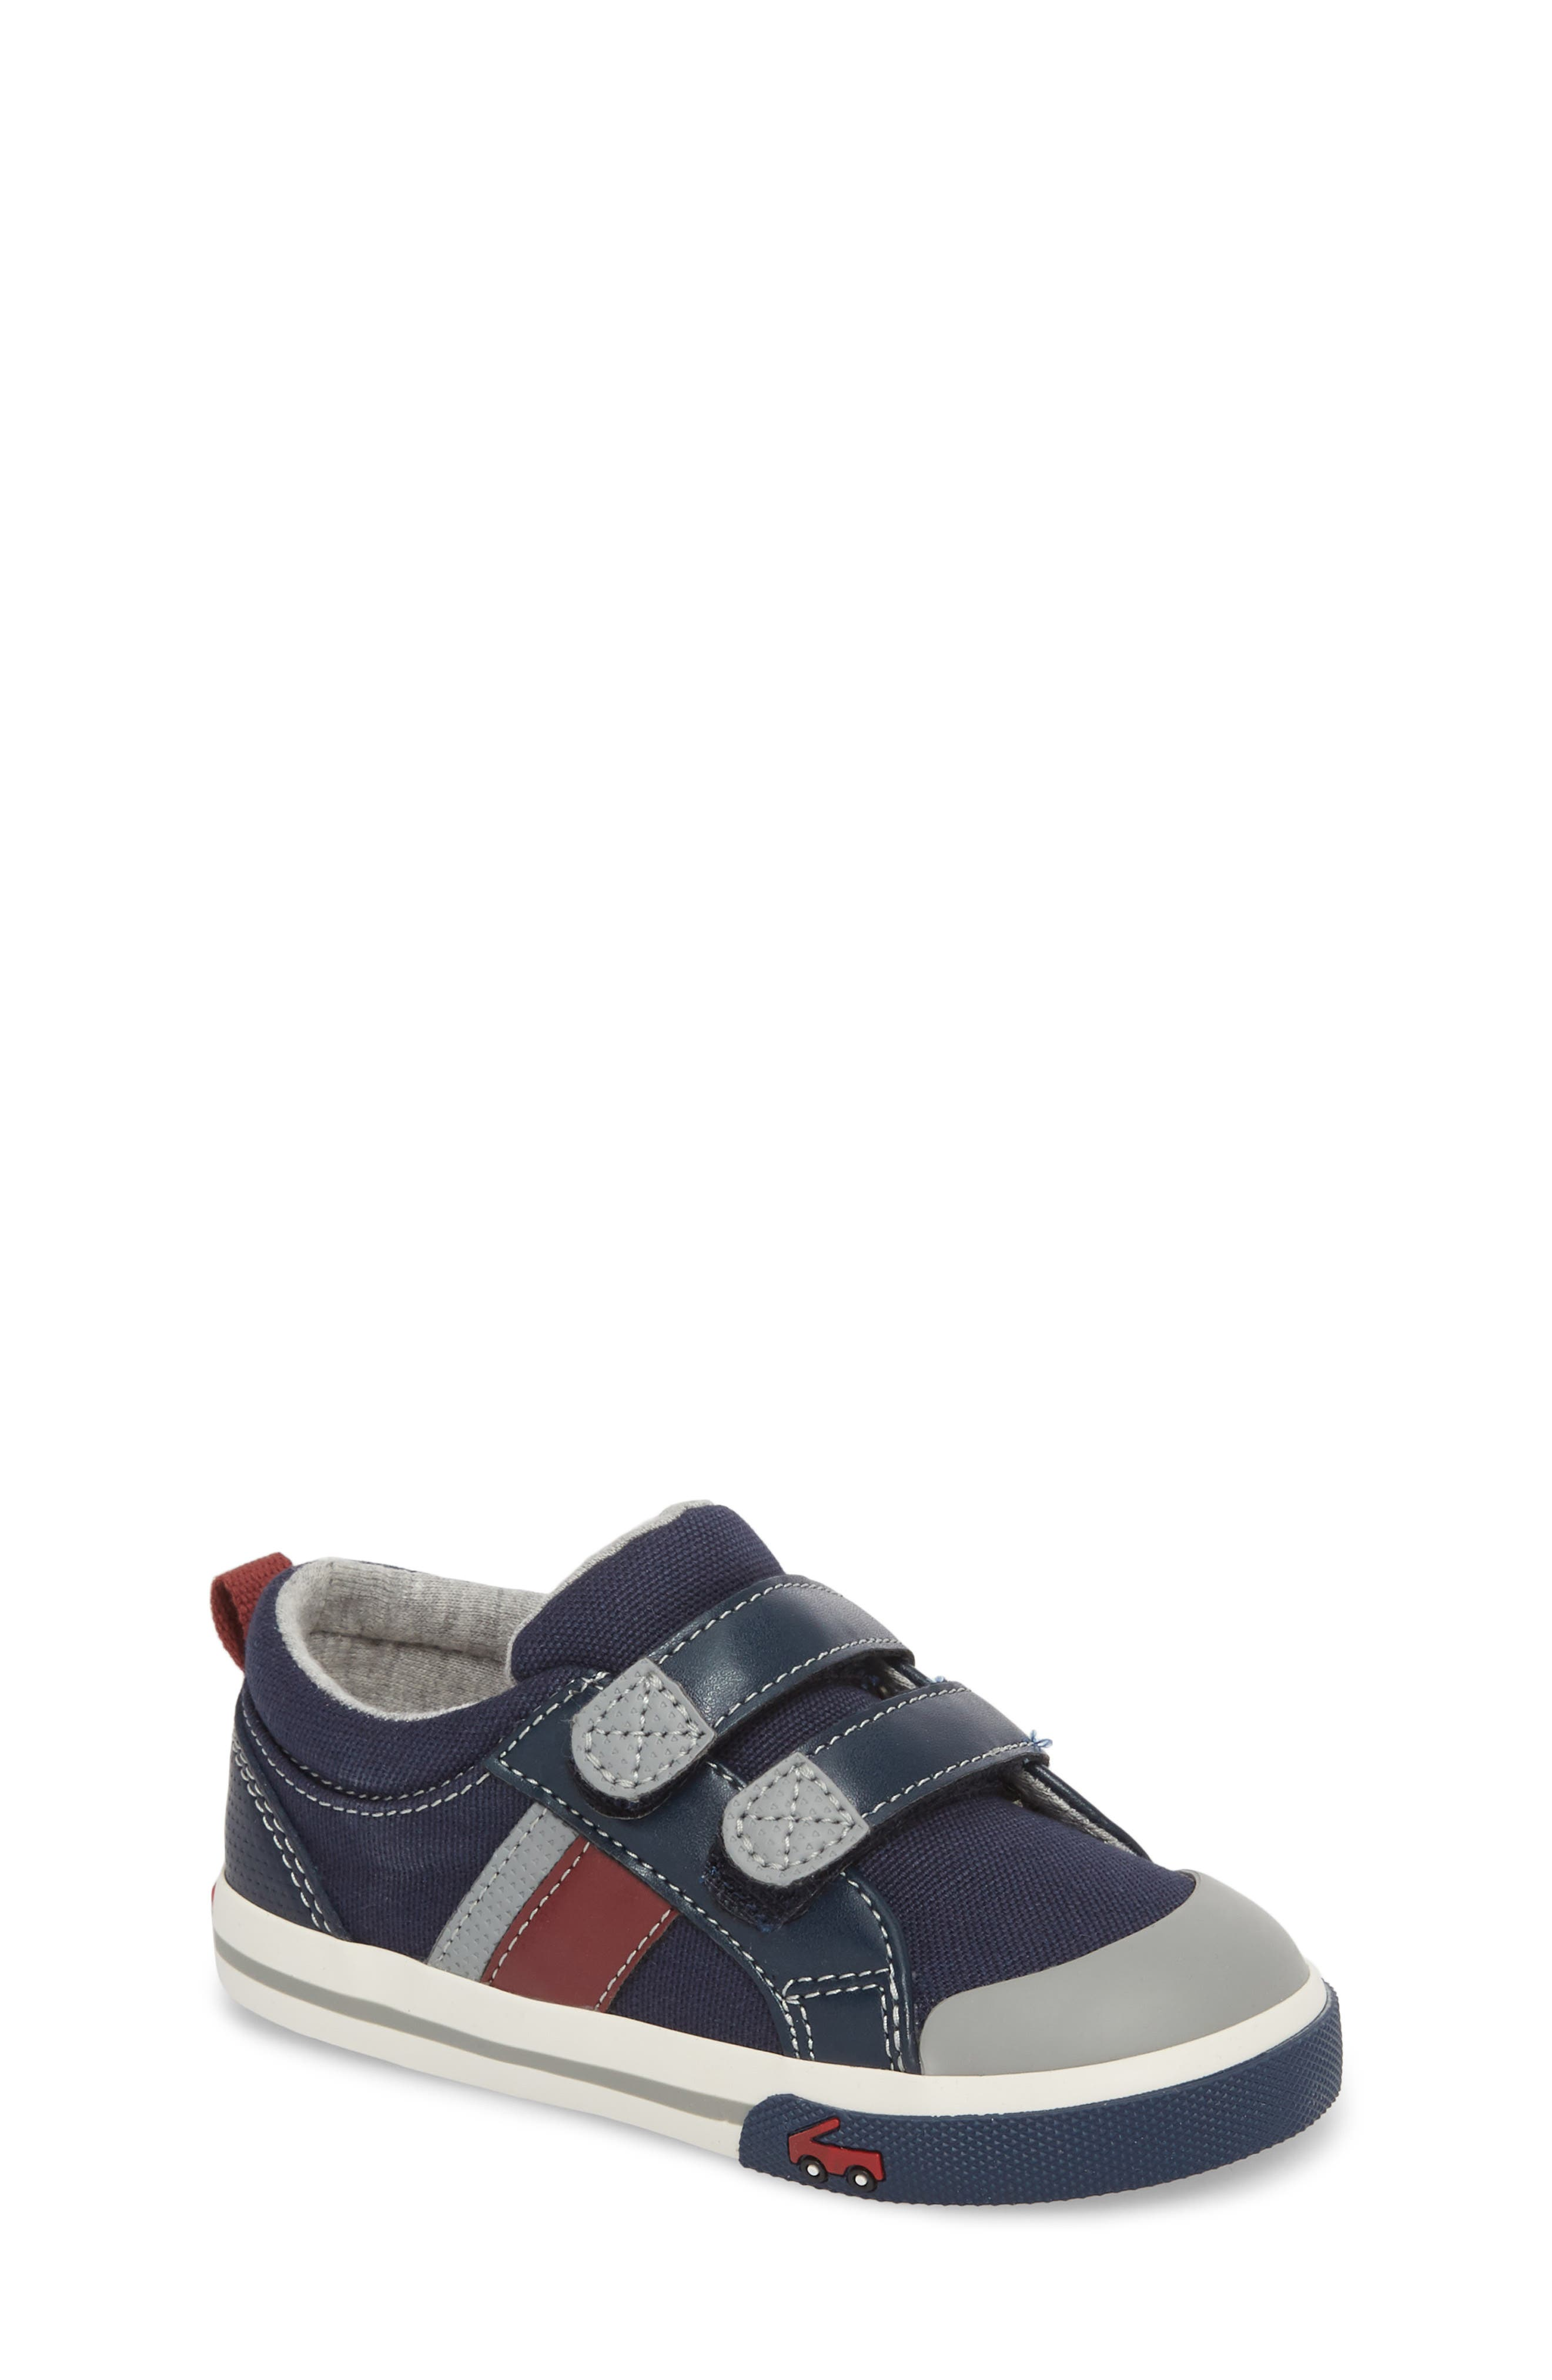 'Russell' Sneaker,                             Main thumbnail 1, color,                             NAVY/ RED